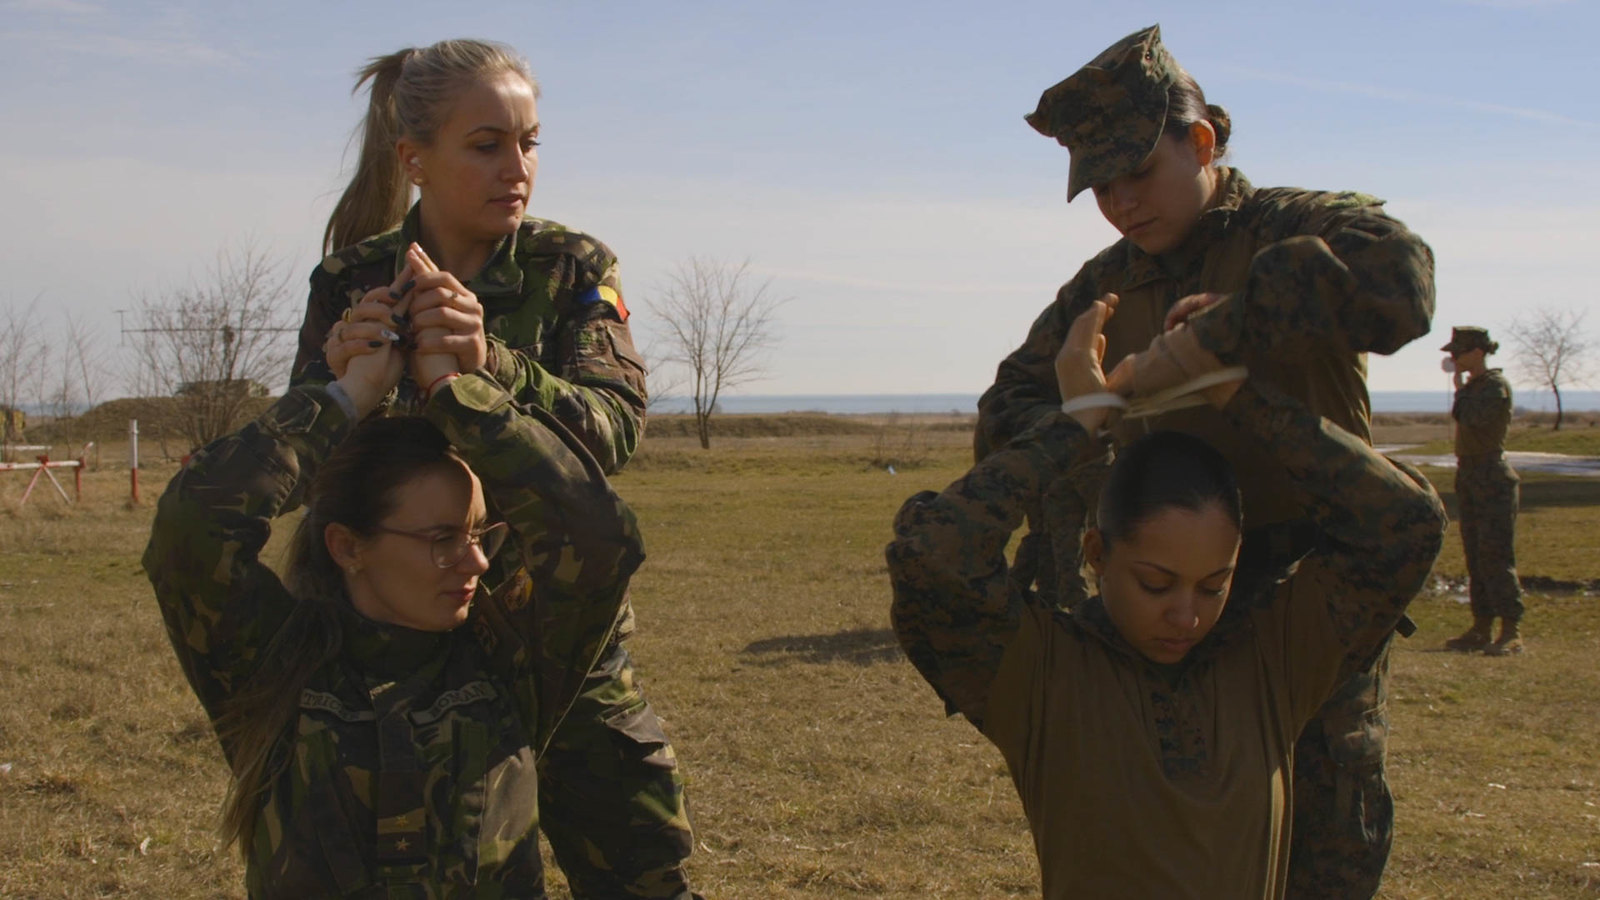 CAPU MIDIA TRAINING AREA, Romania (March 9, 2018) U.S. Marines assigned to the Female Engagement Team (FET), 26th Marine Expeditionary Unit (MEU), and the Romanian FET conduct detainee handling during bi-lateral training at Capu Midia Training Area, Roman